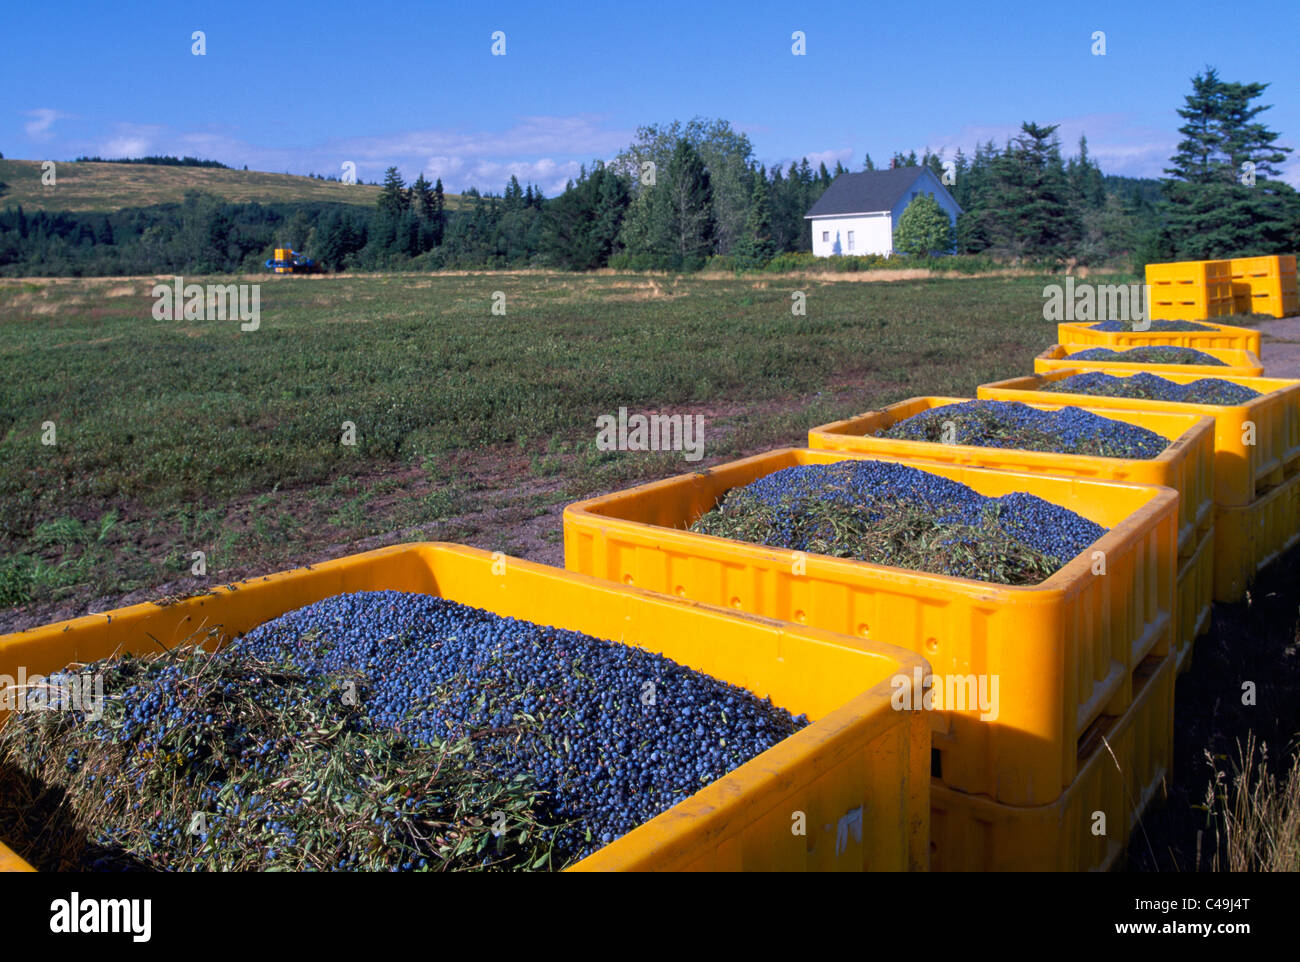 Blueberry Harvest - Wild Blueberries harvested from Field and stored in Crates on Farm near Diligent River, Nova - Stock Image